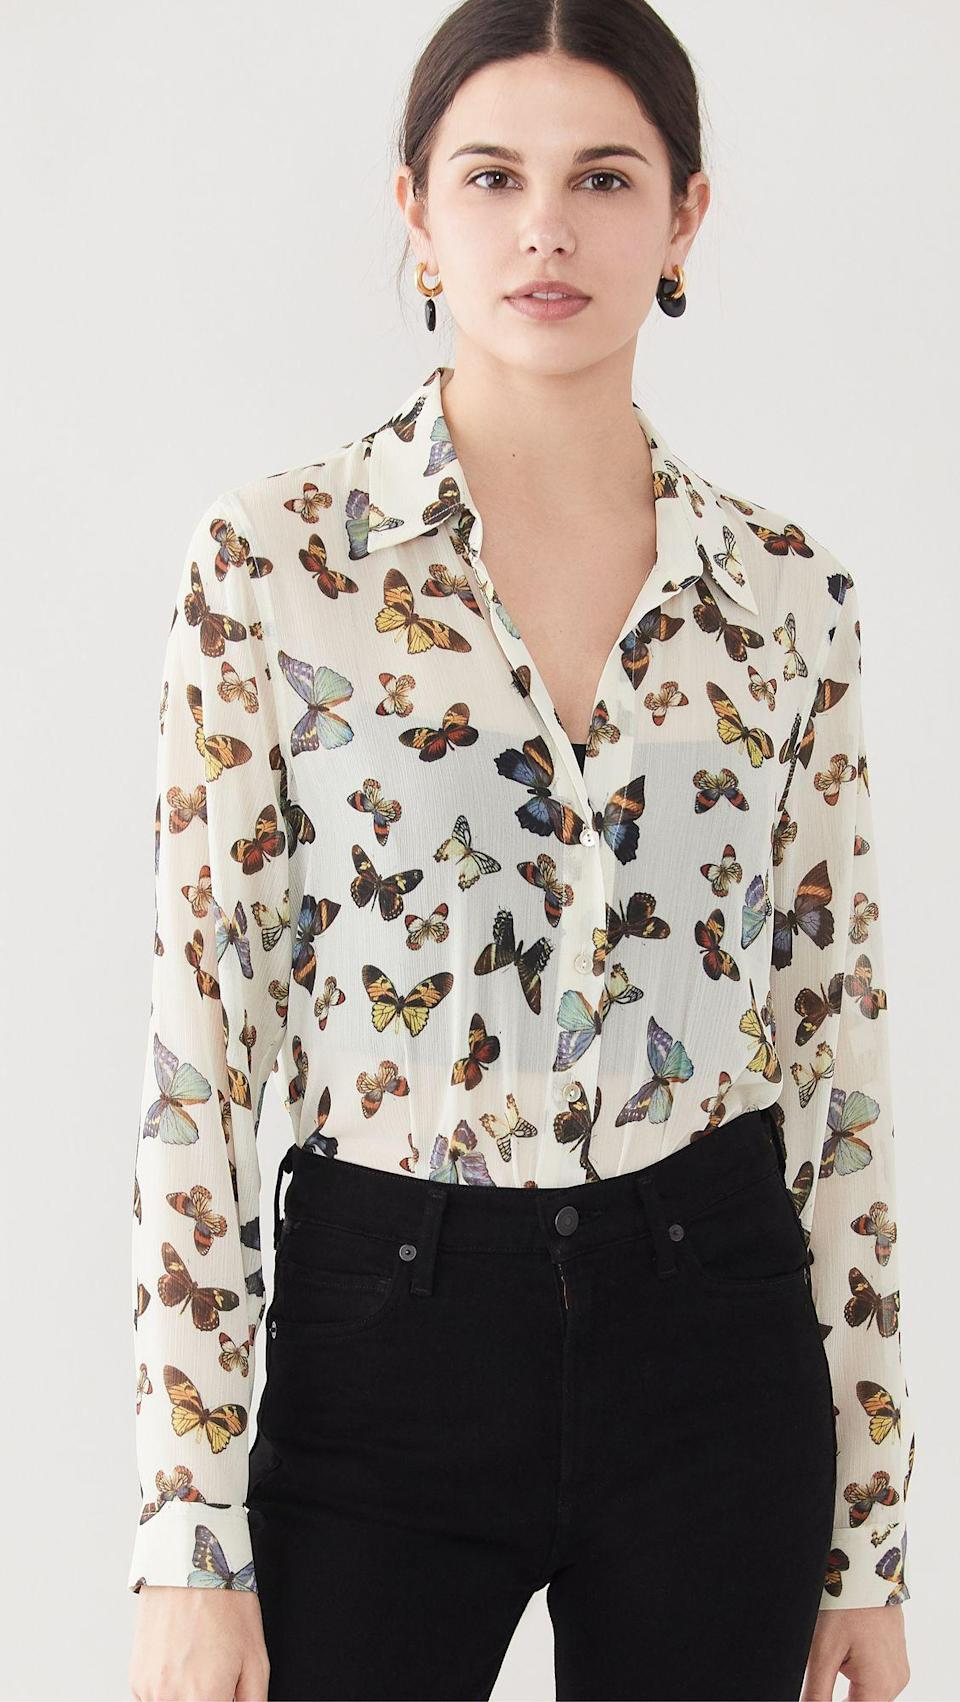 """<p><strong>L'AGENCE</strong></p><p>shopbop.com</p><p><strong>$275.00</strong></p><p><a href=""""https://go.redirectingat.com?id=74968X1596630&url=https%3A%2F%2Fwww.shopbop.com%2Flaurent-blouse-lagence%2Fvp%2Fv%3D1%2F1535941731.htm&sref=https%3A%2F%2Fwww.townandcountrymag.com%2Fsociety%2Ftradition%2Fg37148297%2Froyal-family-printed-clothes-shop%2F"""" rel=""""nofollow noopener"""" target=""""_blank"""" data-ylk=""""slk:Shop Now"""" class=""""link rapid-noclick-resp"""">Shop Now</a></p><p>With a white background and colorful butterflies, L'Agence's blouse has a print nearly identical to Queen Mathilde's. Plus, it's a great office-to-dinner transition piece. </p>"""